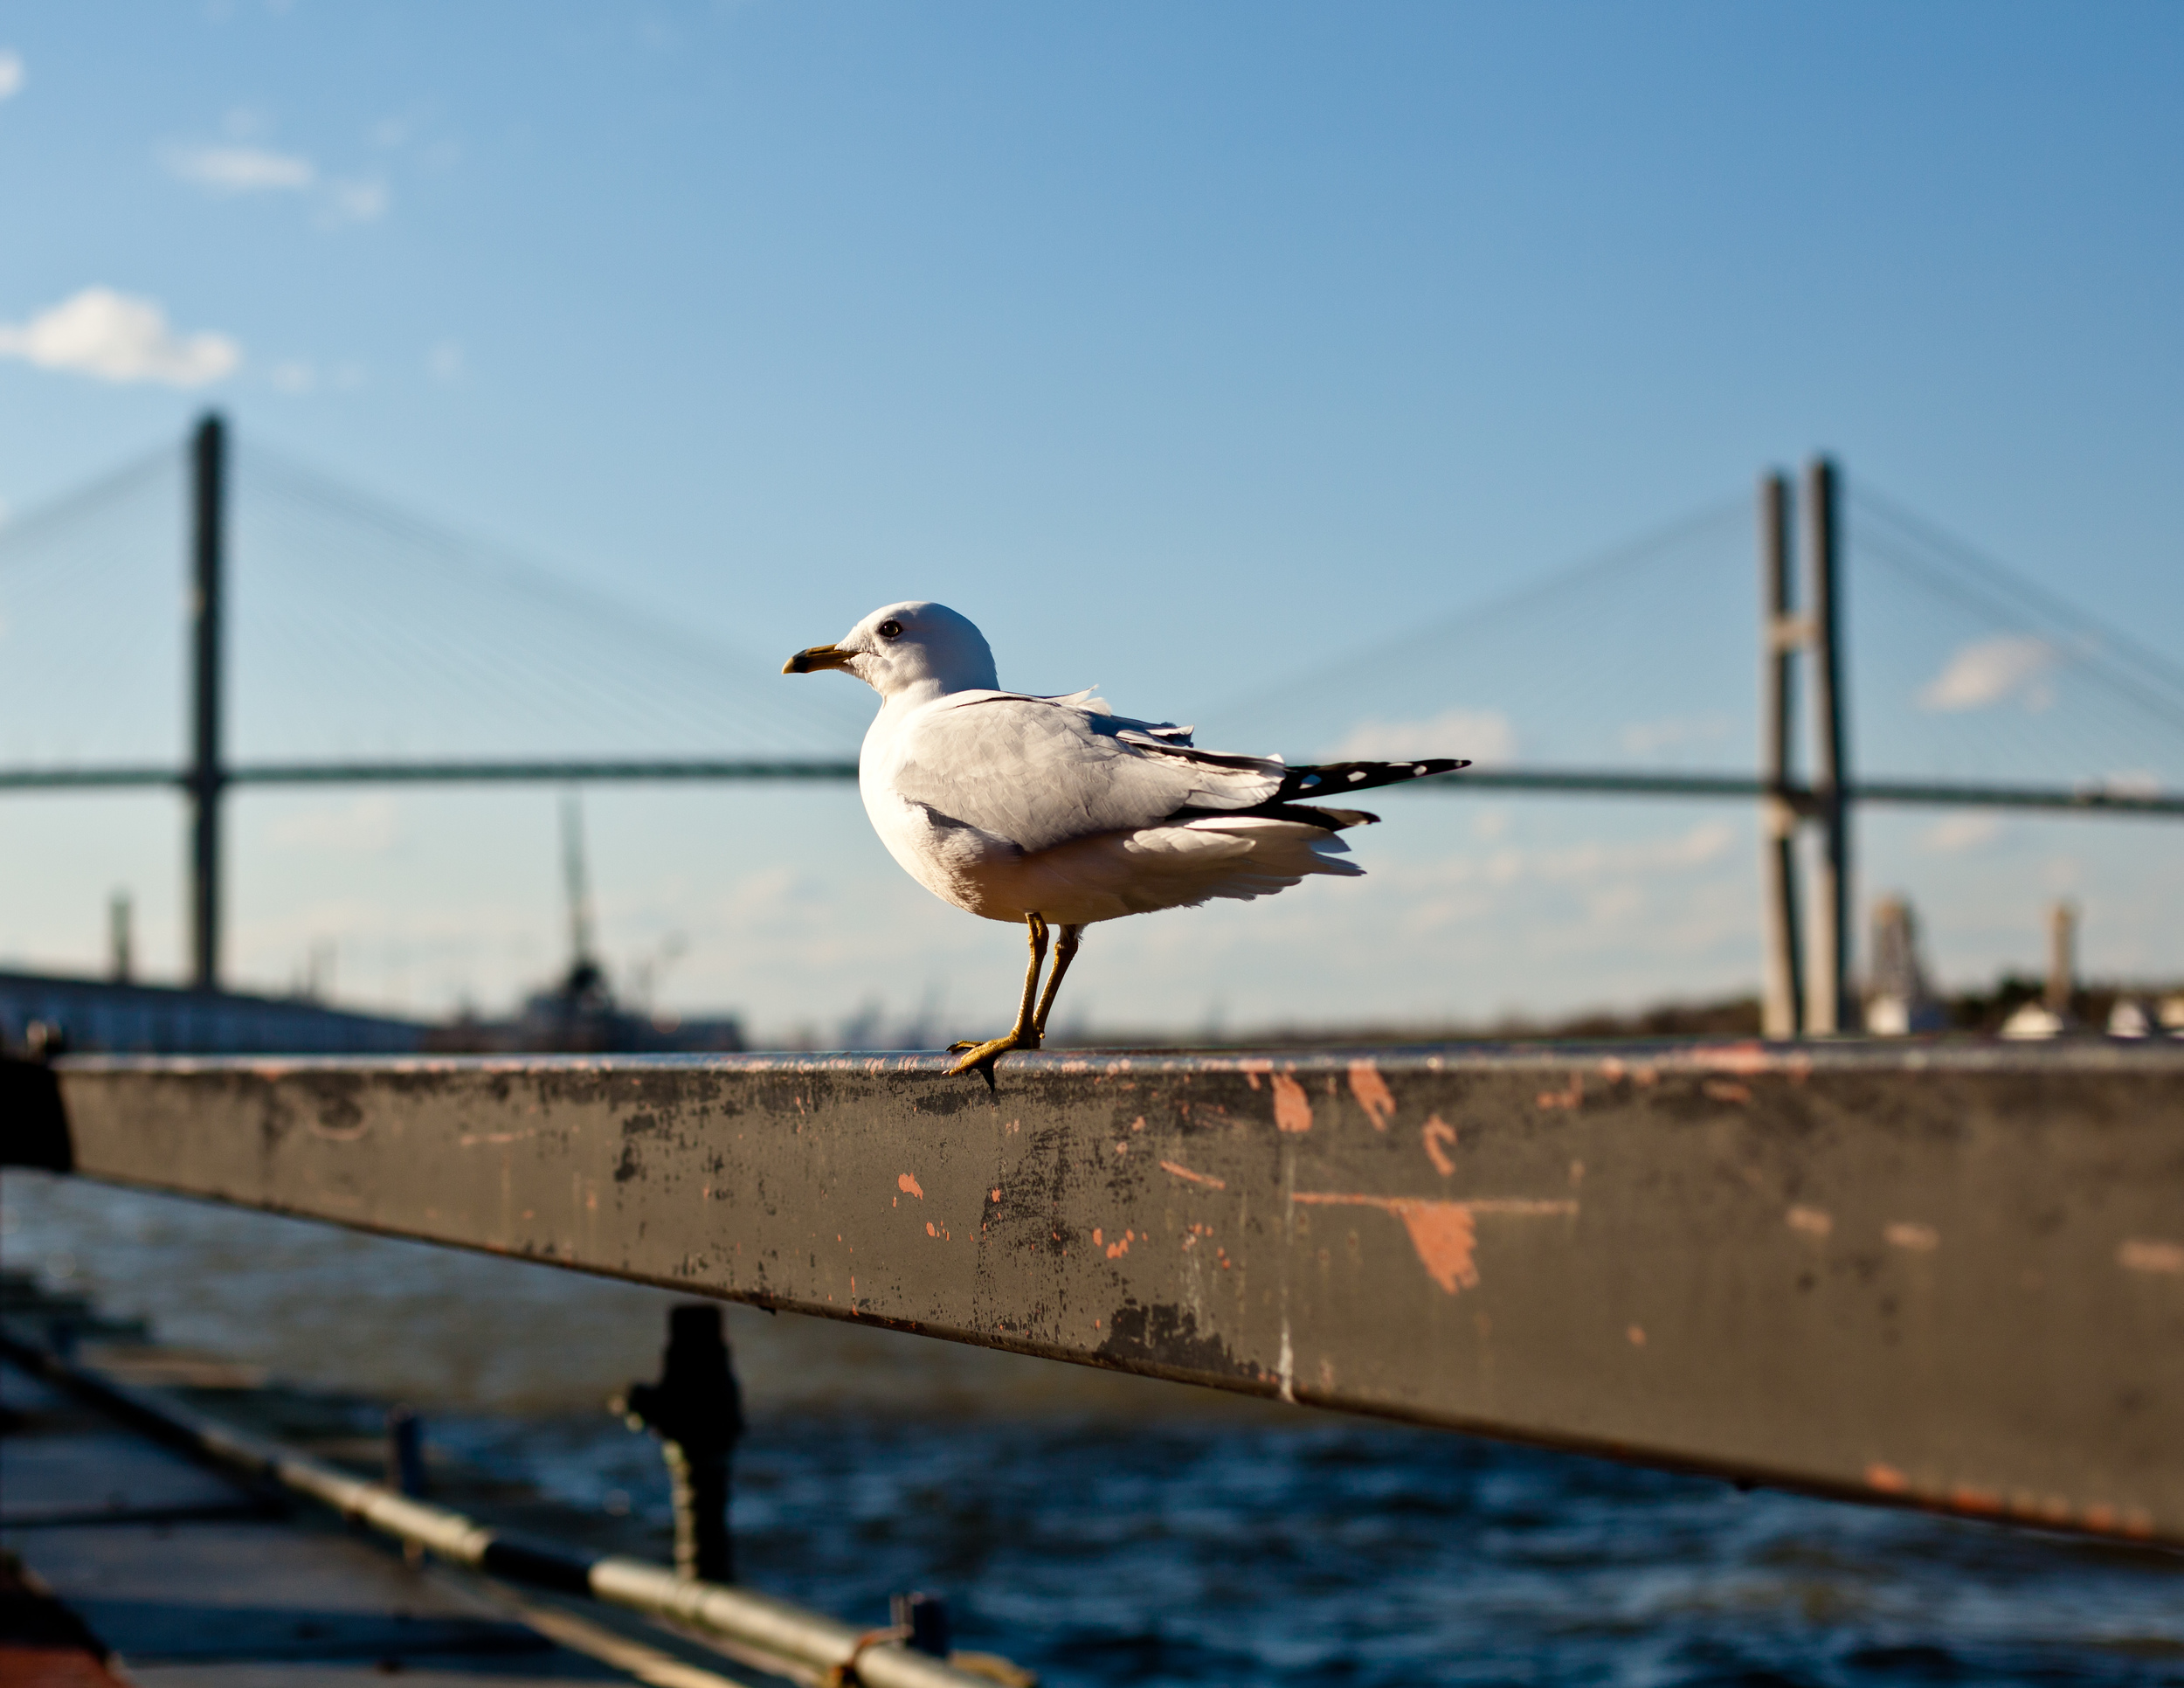 © 2012 Pablo & Britt Photography LLC Top_10_PhotoSpots_#1_Talmadge_Bridge_1.jpg